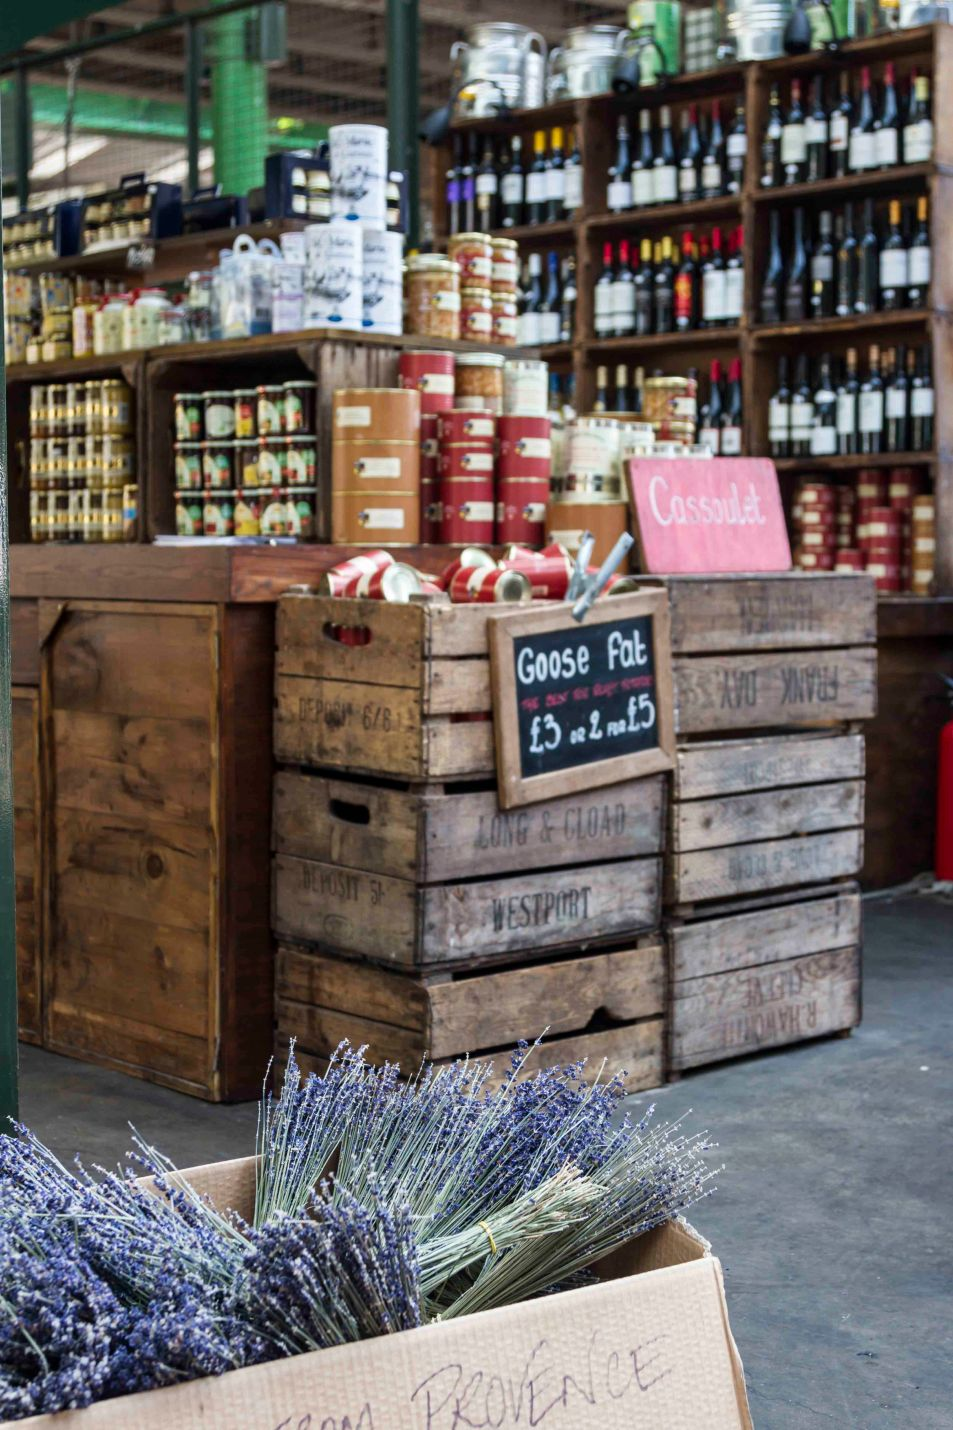 Nelson_Carvalheiro_Borough_Market_12